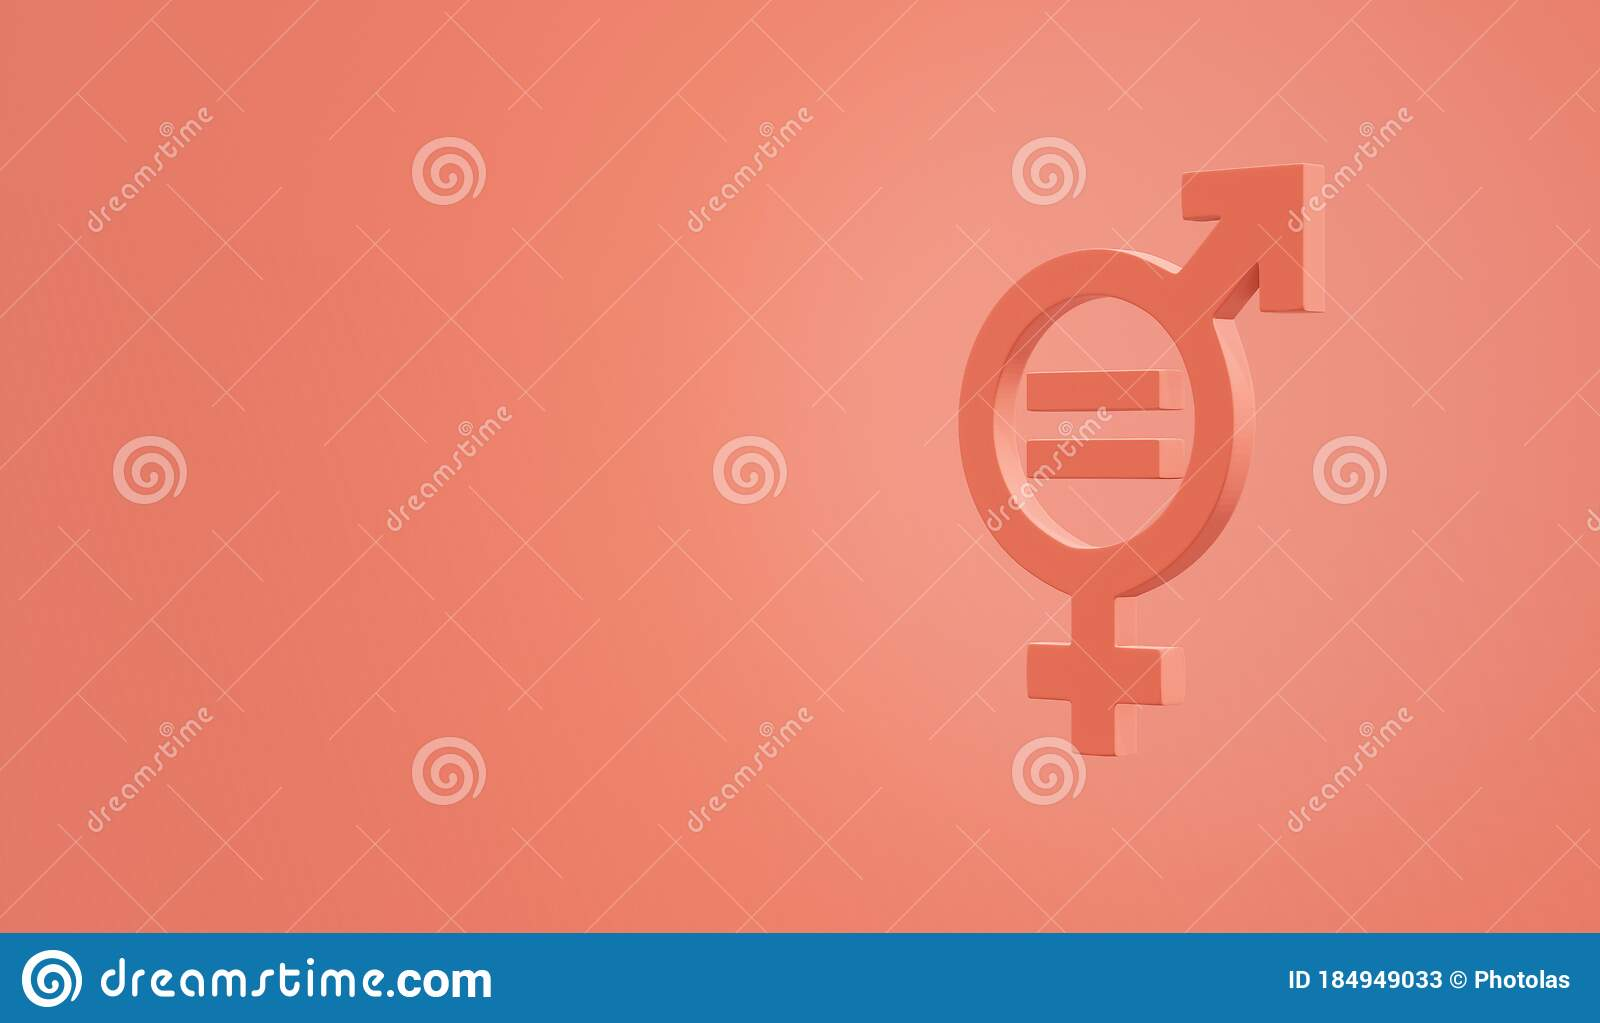 sustainable development goals gender equality icon 3d rendering stock illustration illustration of zero power 184949033 sustainable development goals gender equality icon 3d rendering stock illustration illustration of zero power 184949033